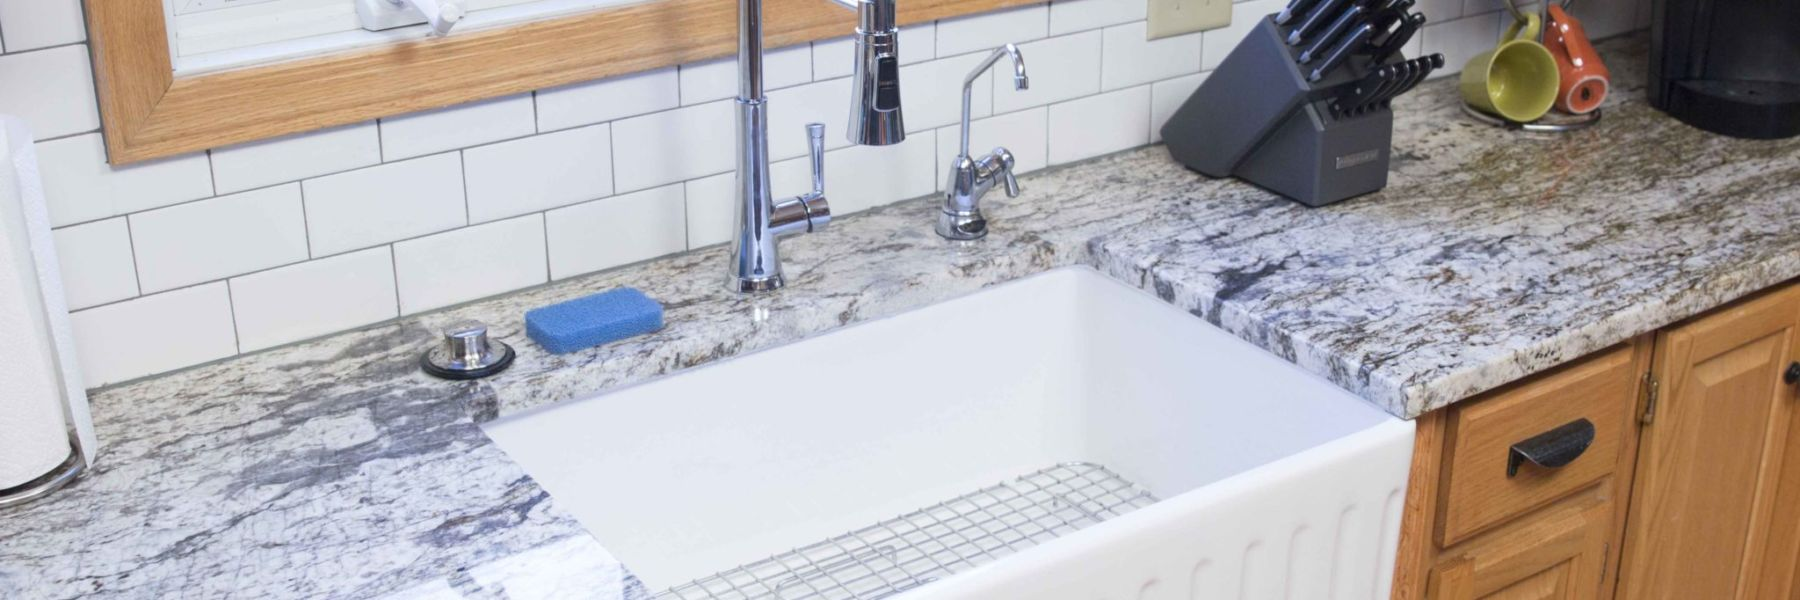 How to Install a Fireclay Farmhouse Kitchen Sink: The Wheatley ...